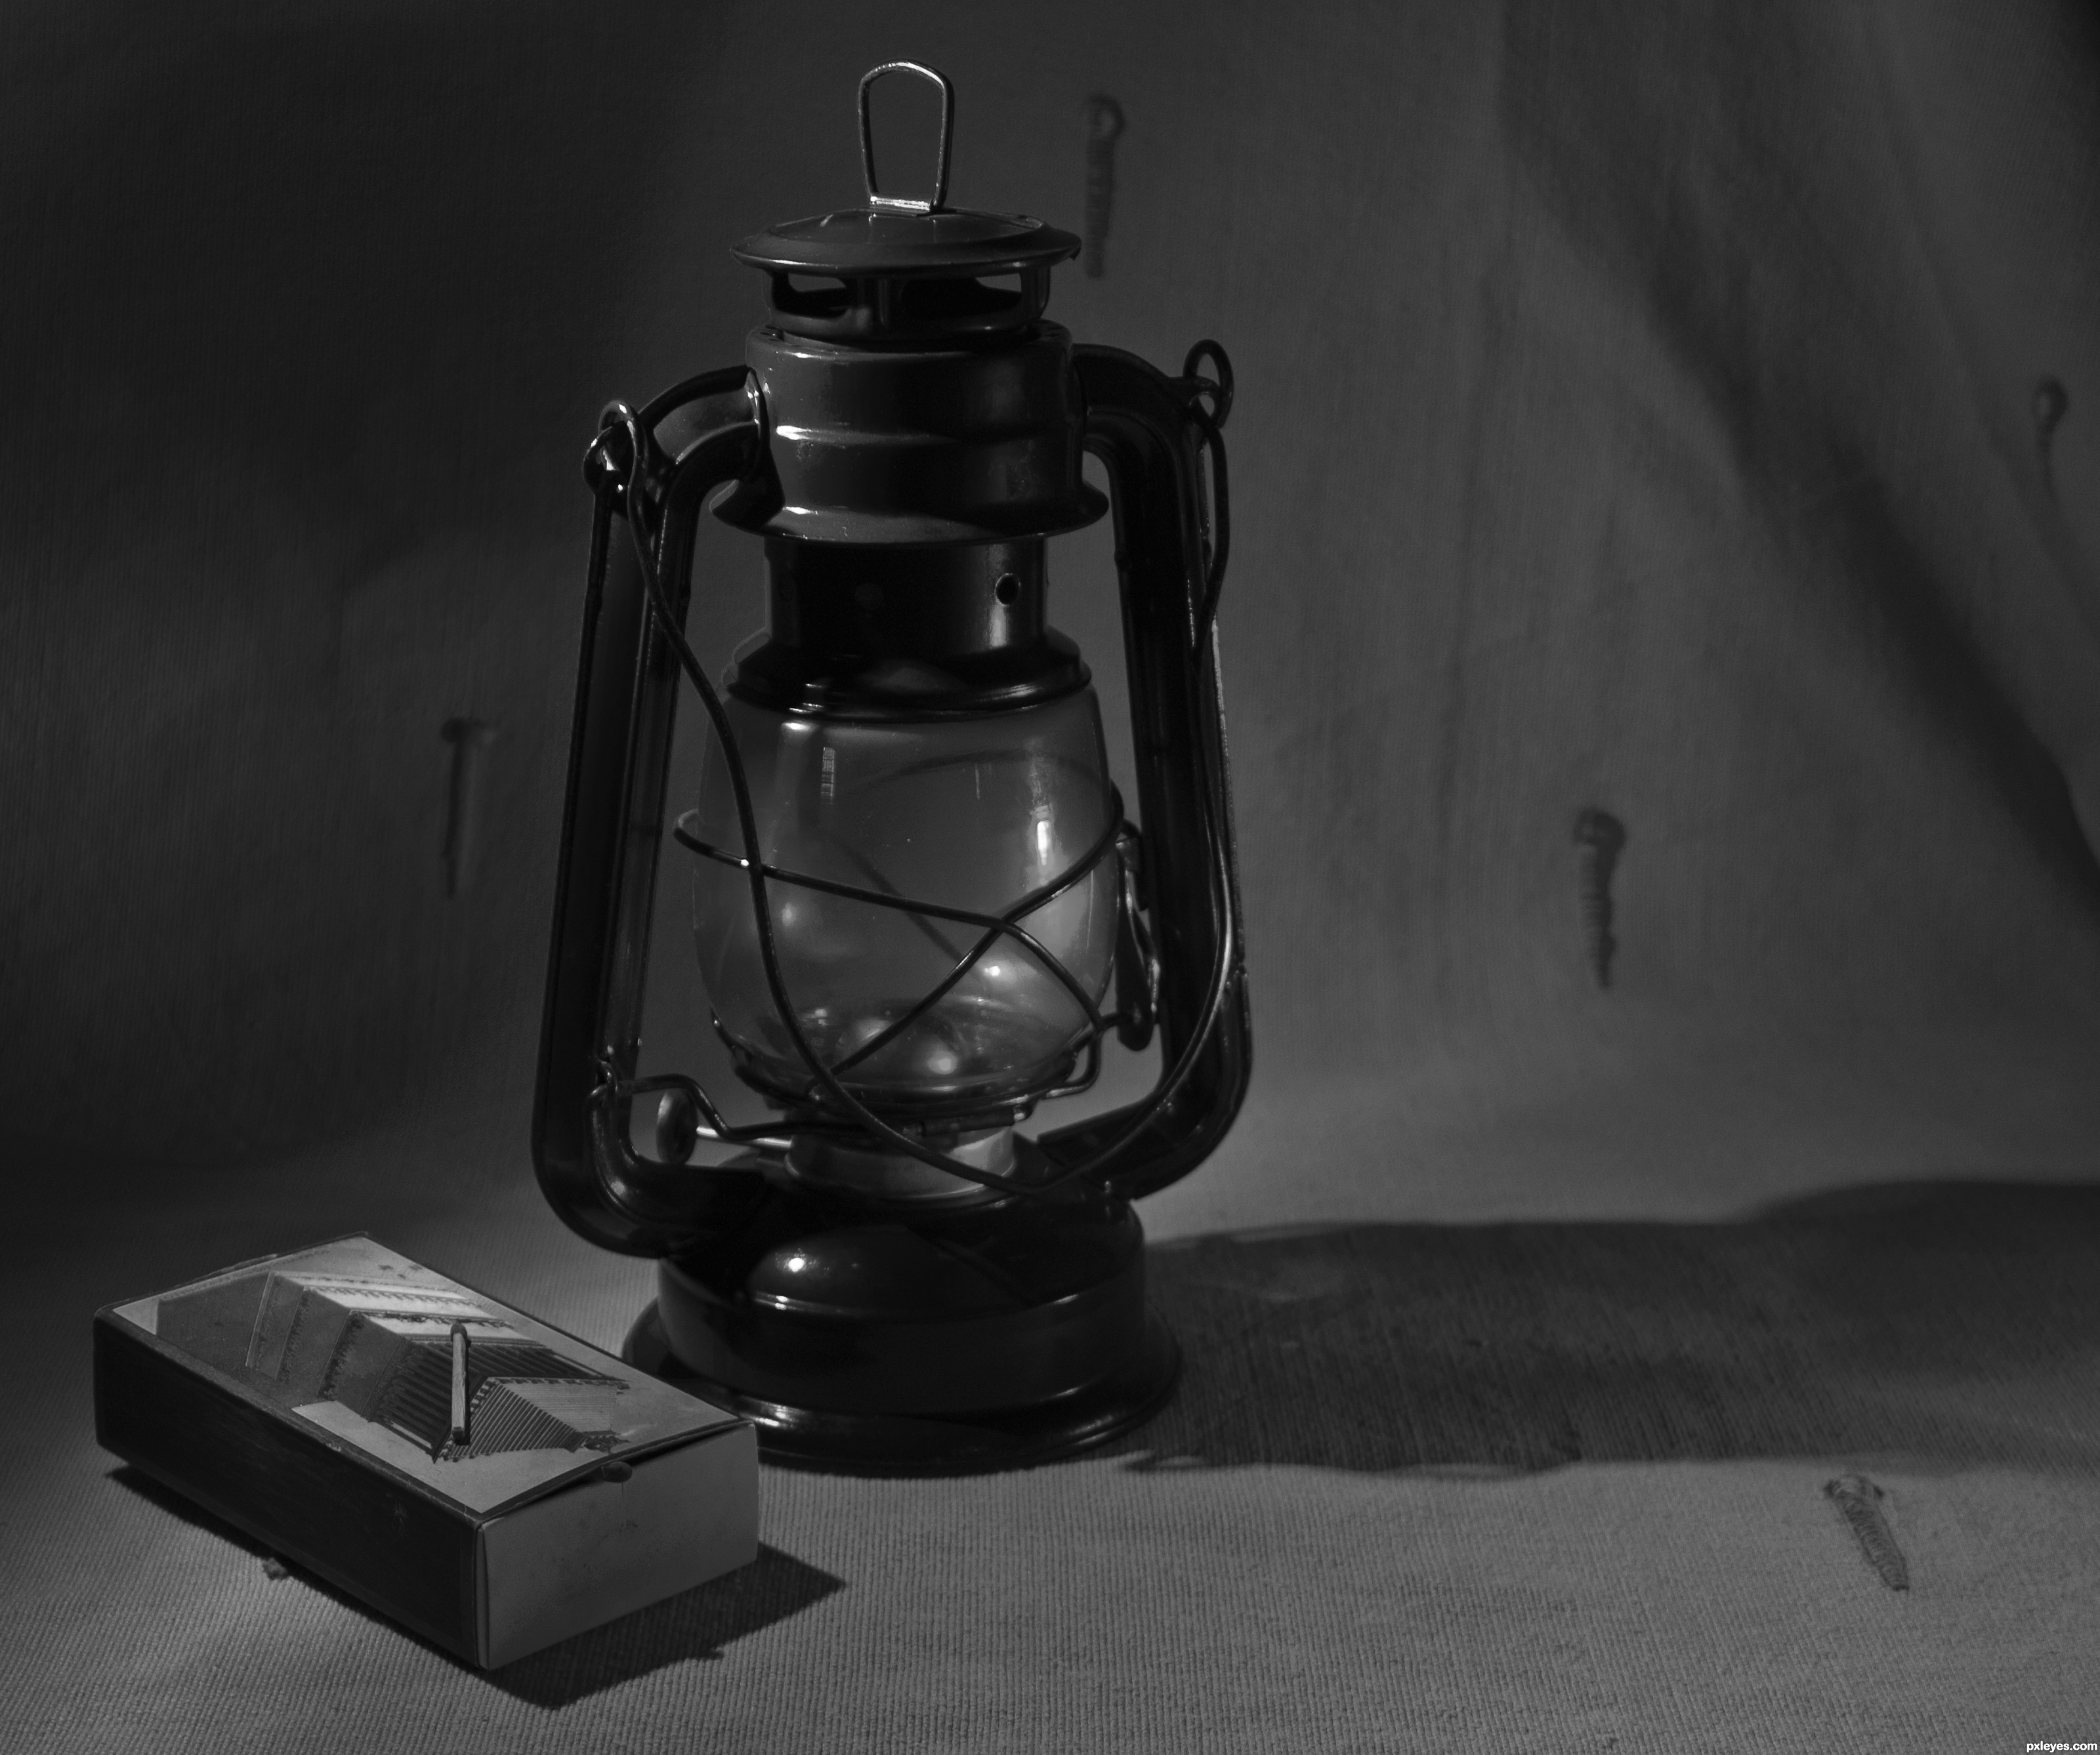 Oil Lamp Picture, By Jerostone For: Lighting 2 Photography